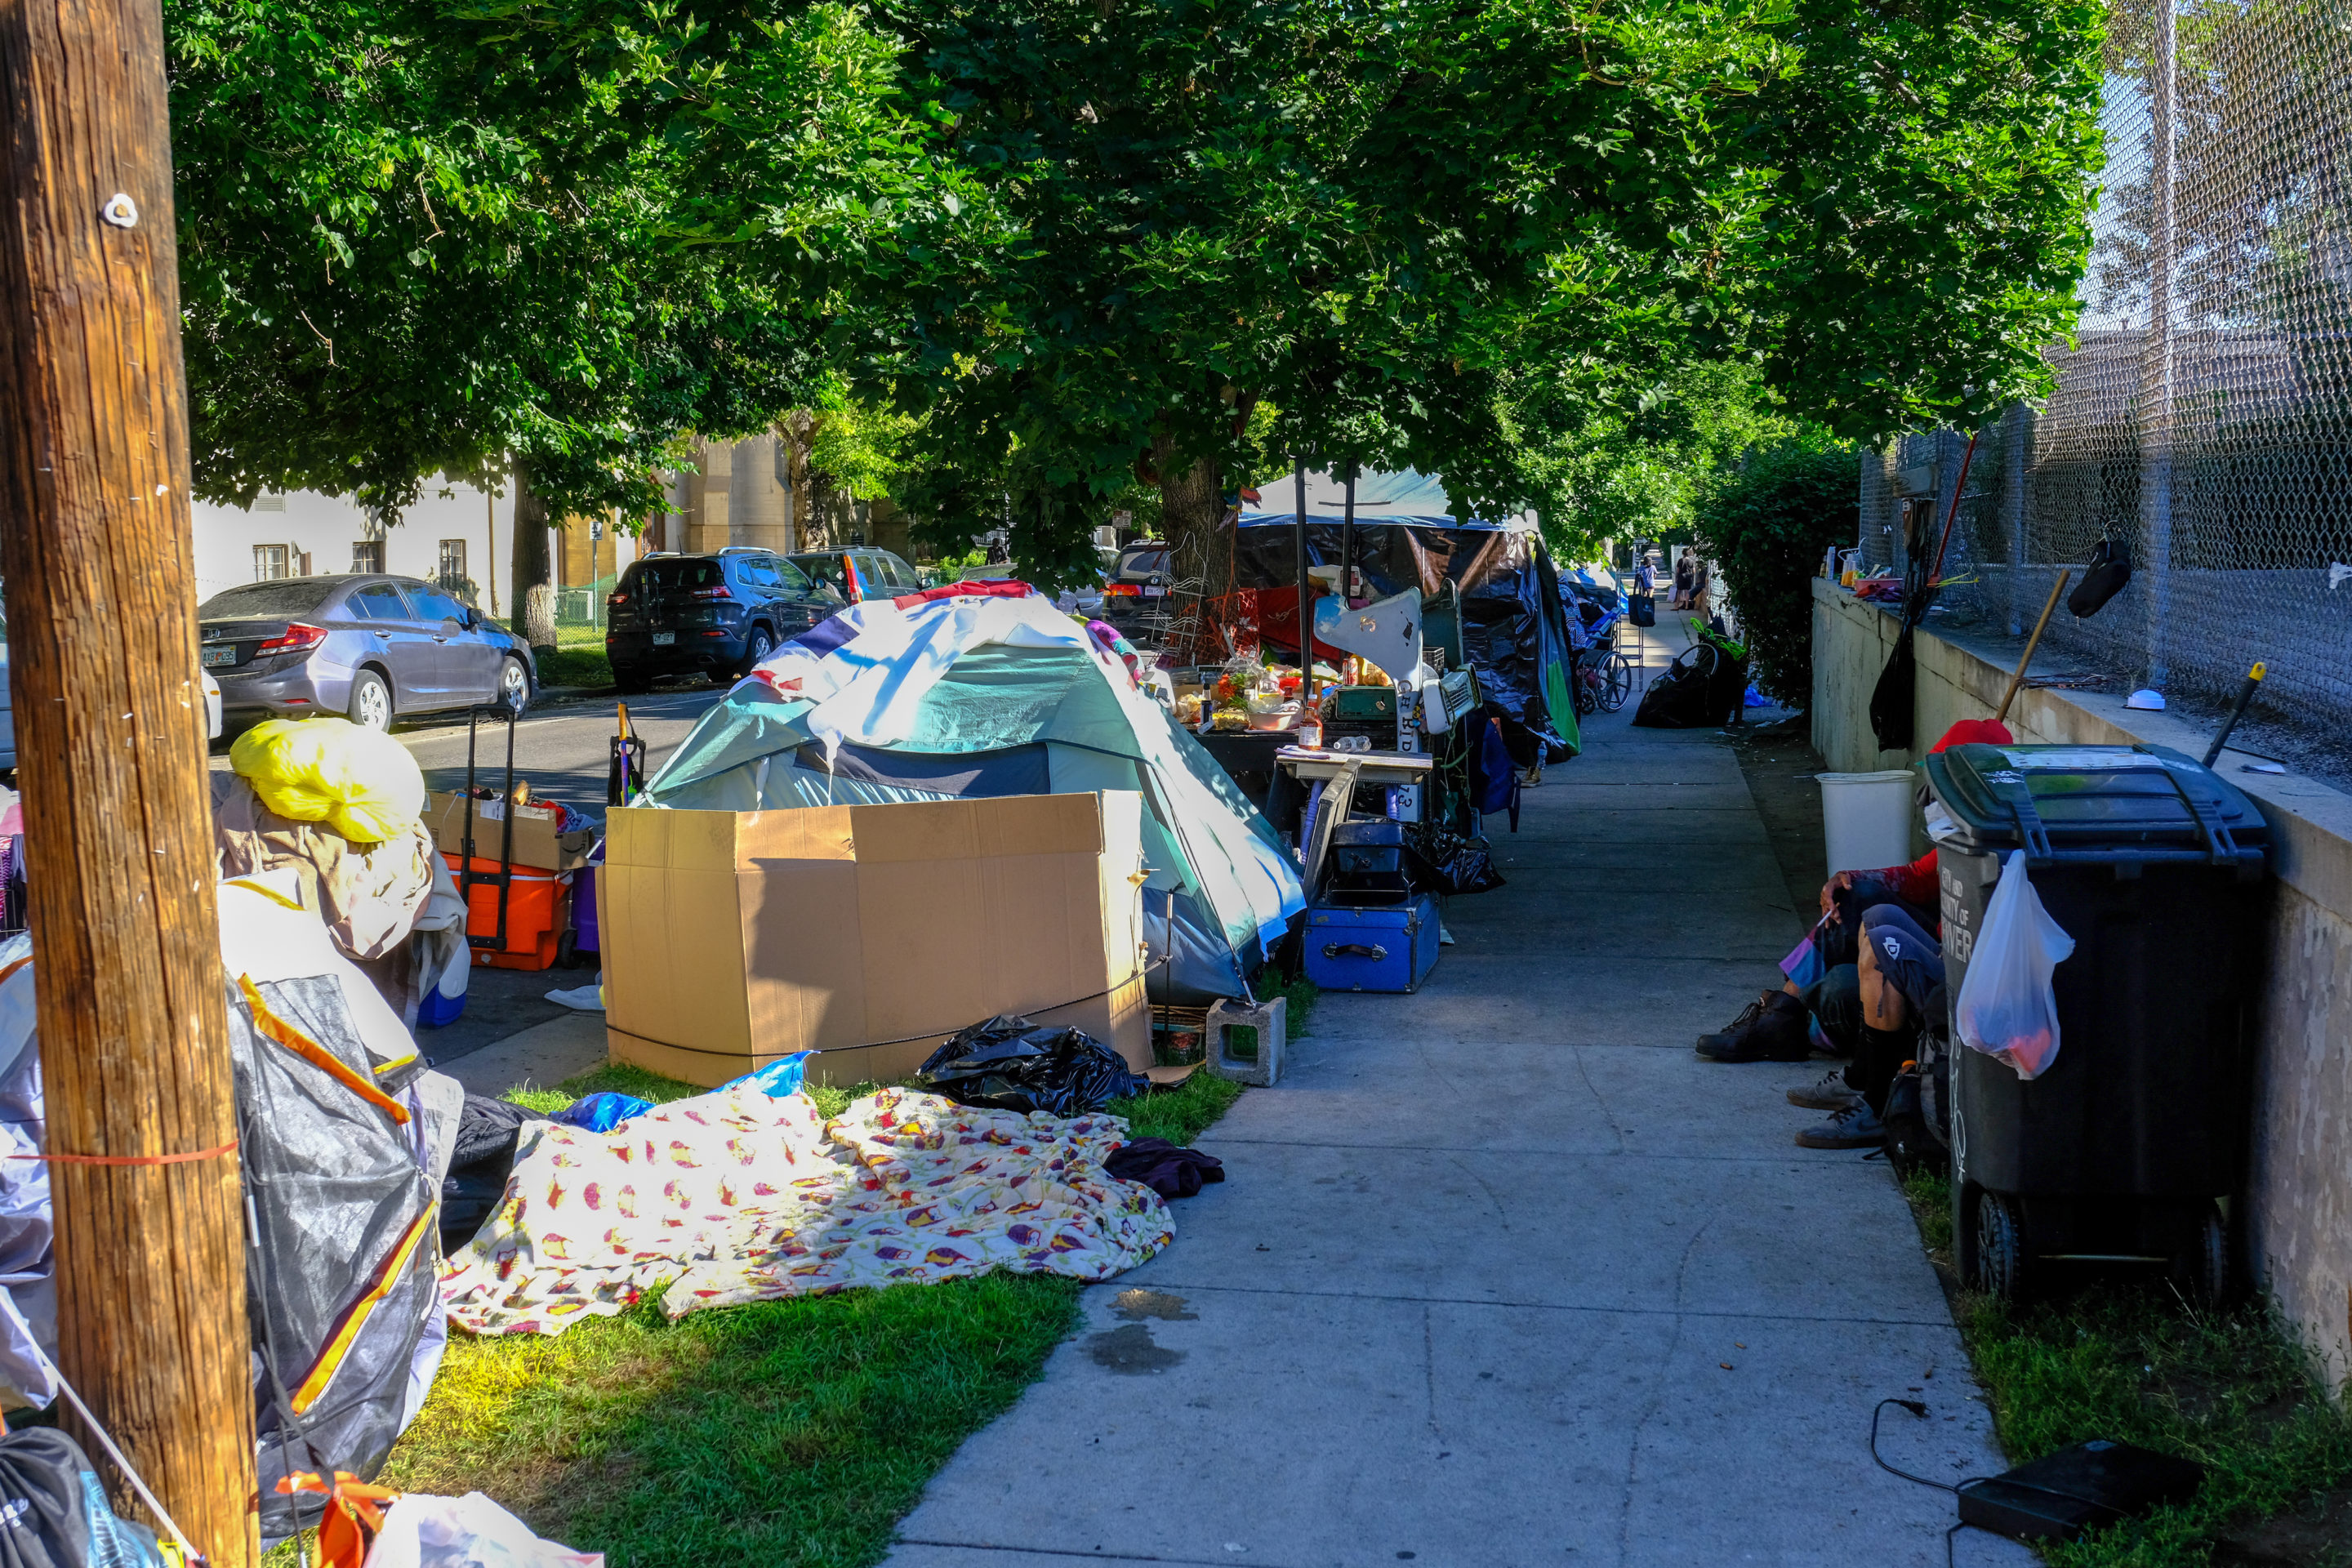 Officials 'confused' by sweep of small homeless encampment on Glenarm